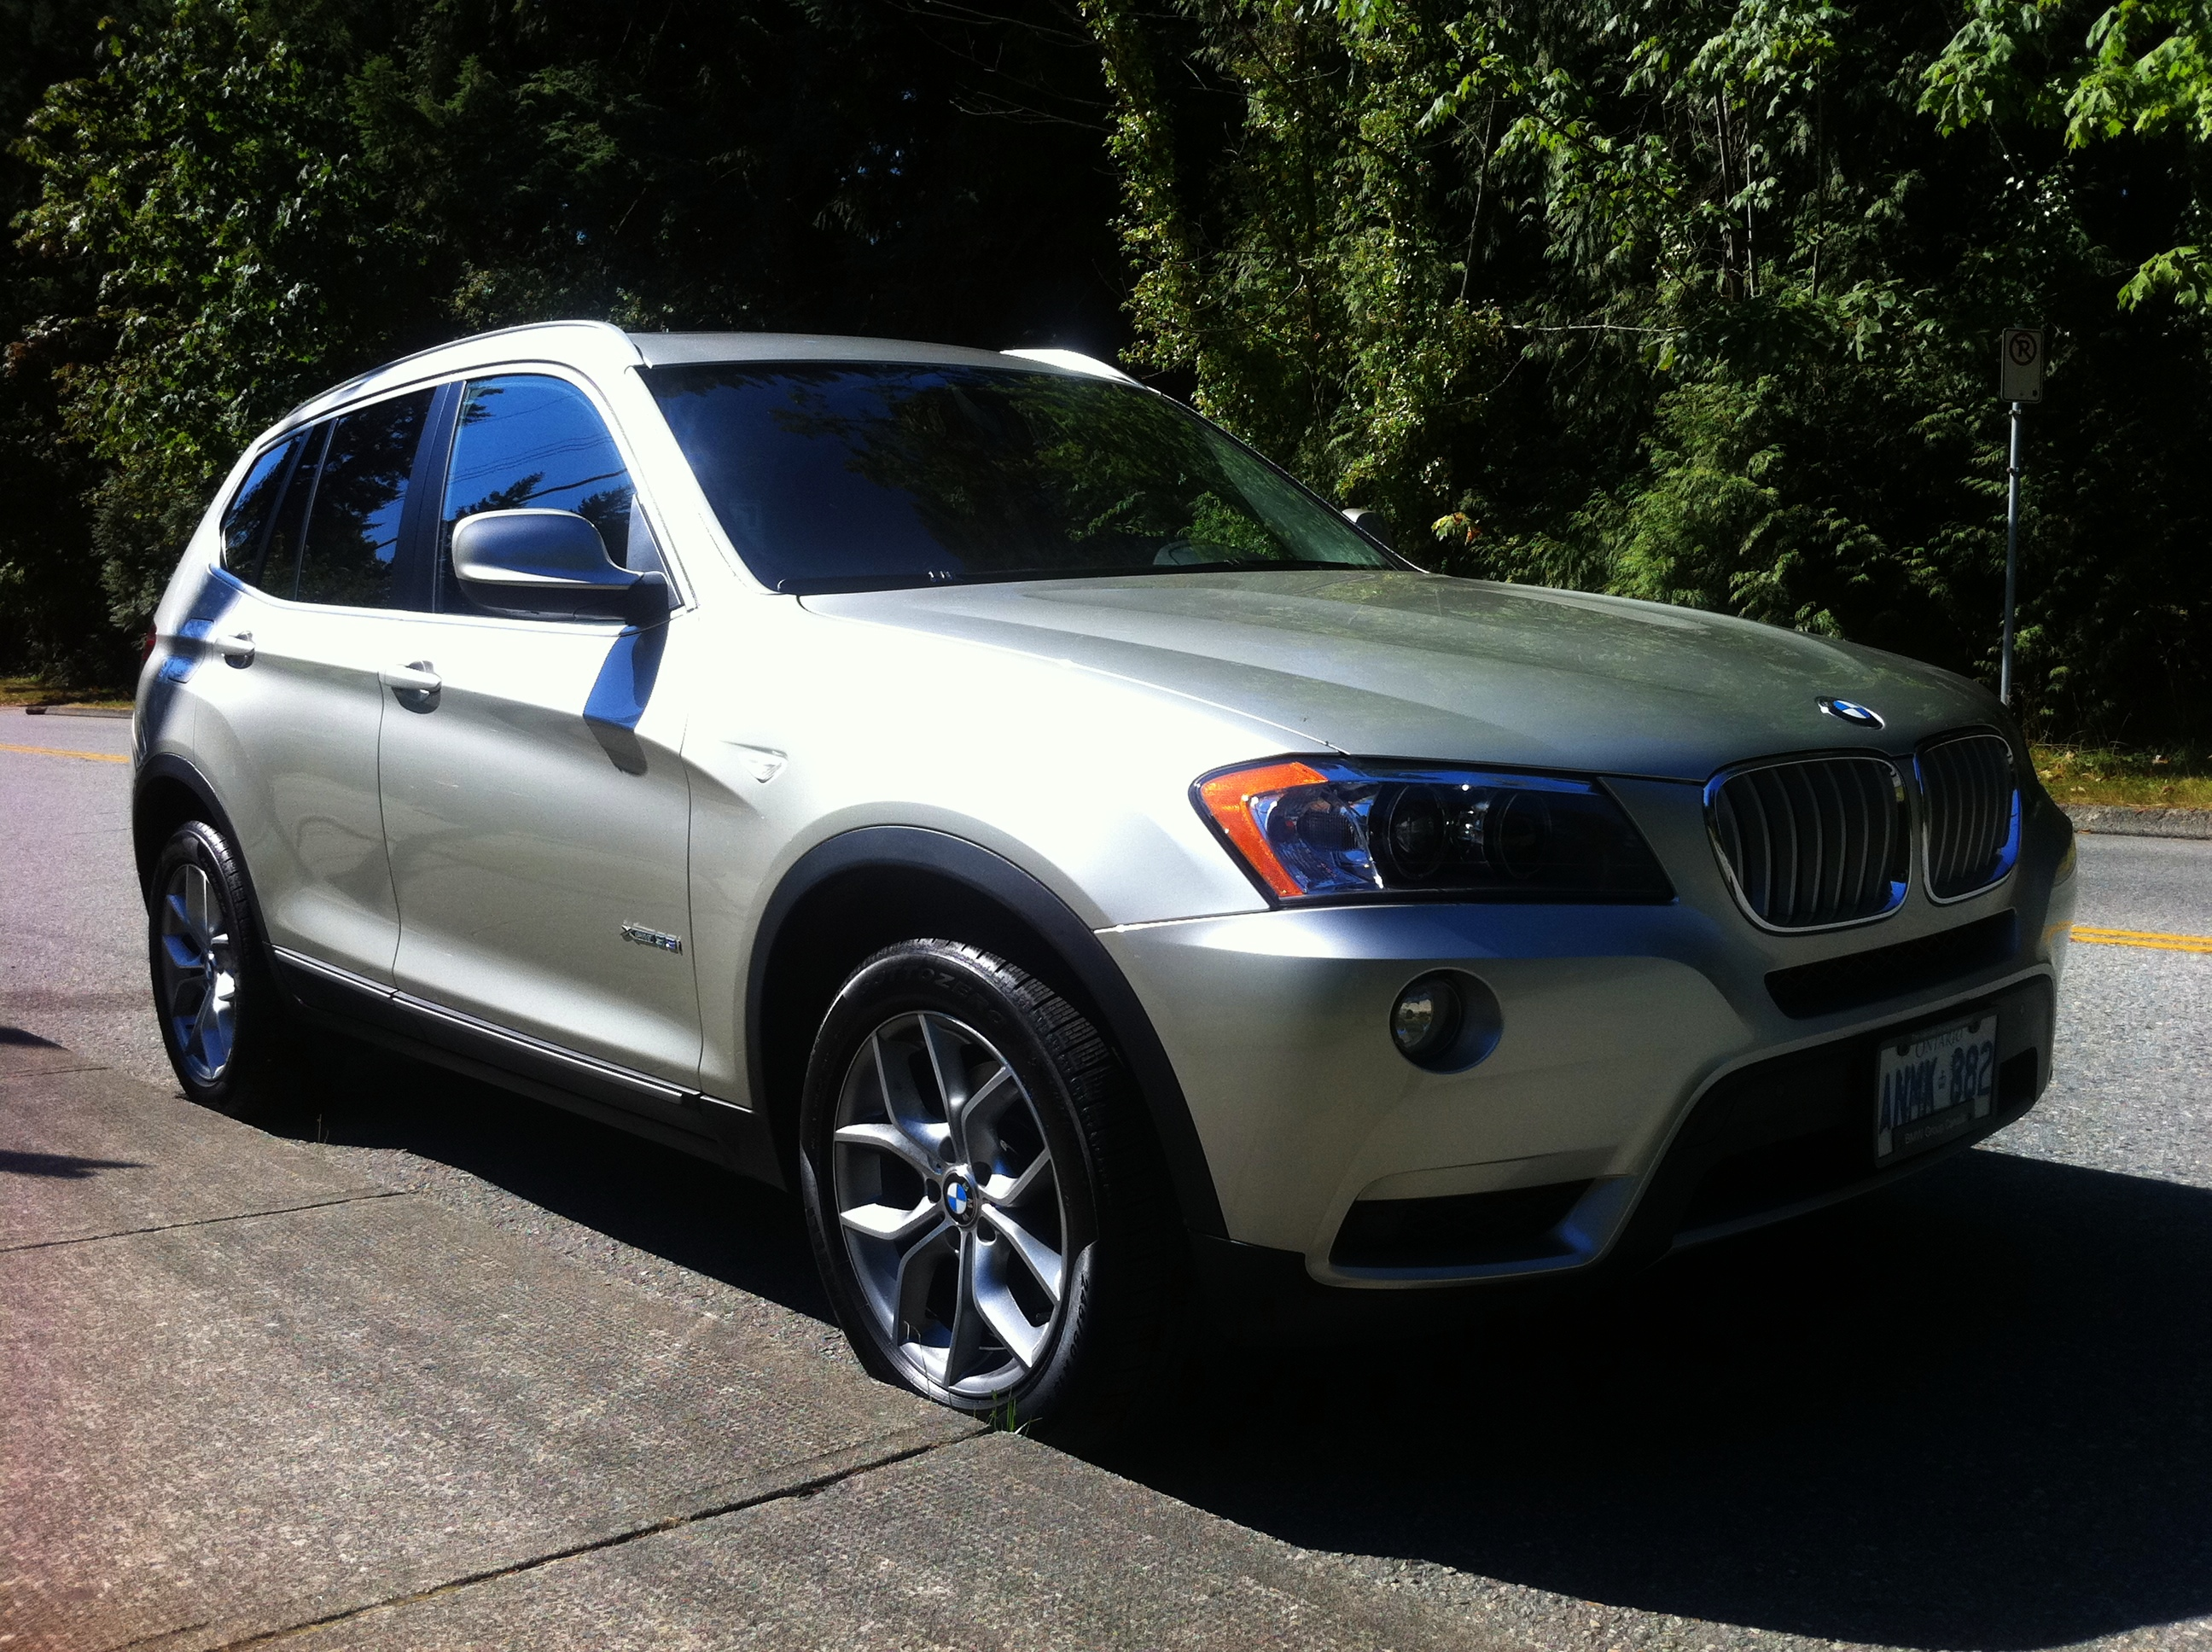 Review: 2011 BMW X3 xDrive35i - The Truth About Cars